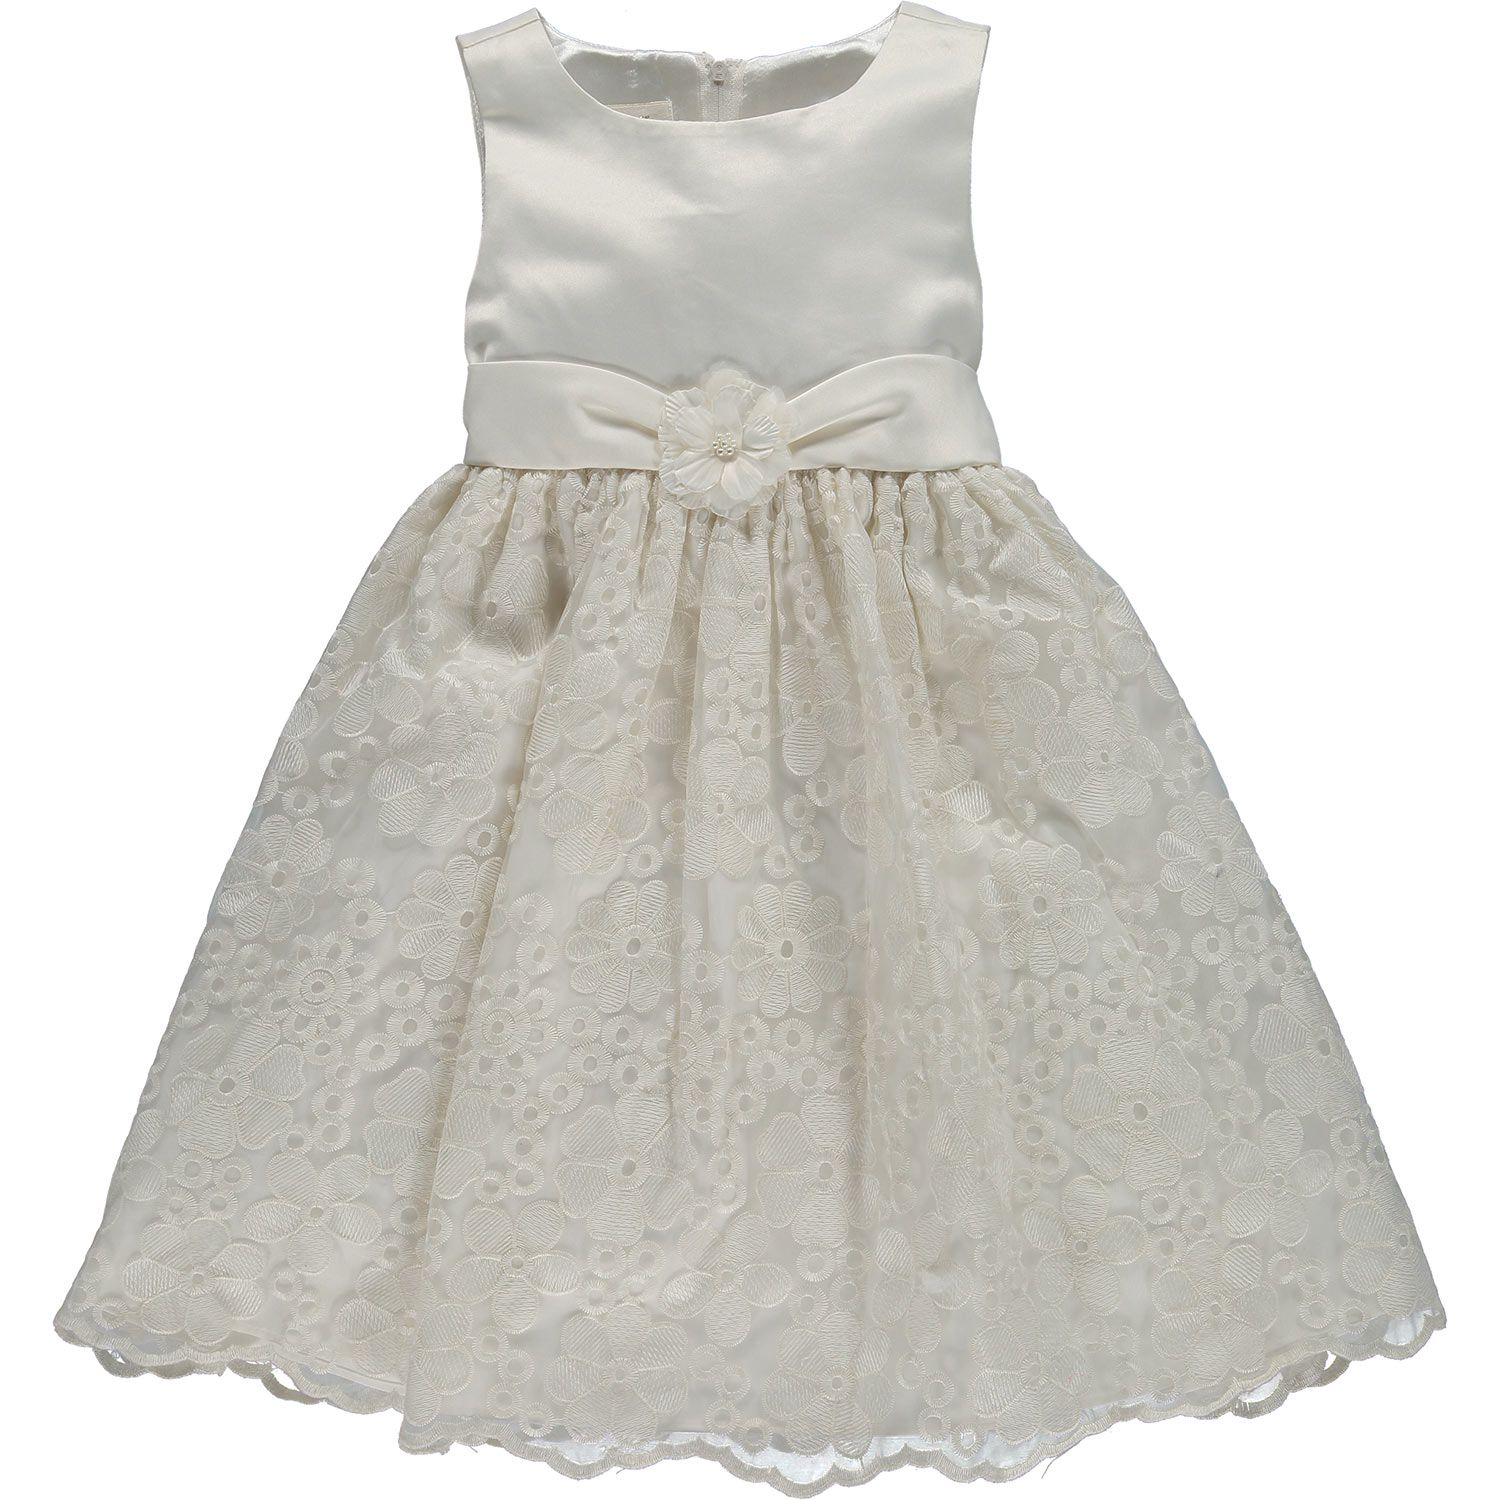 Special Occasion White Floral Lace Dress